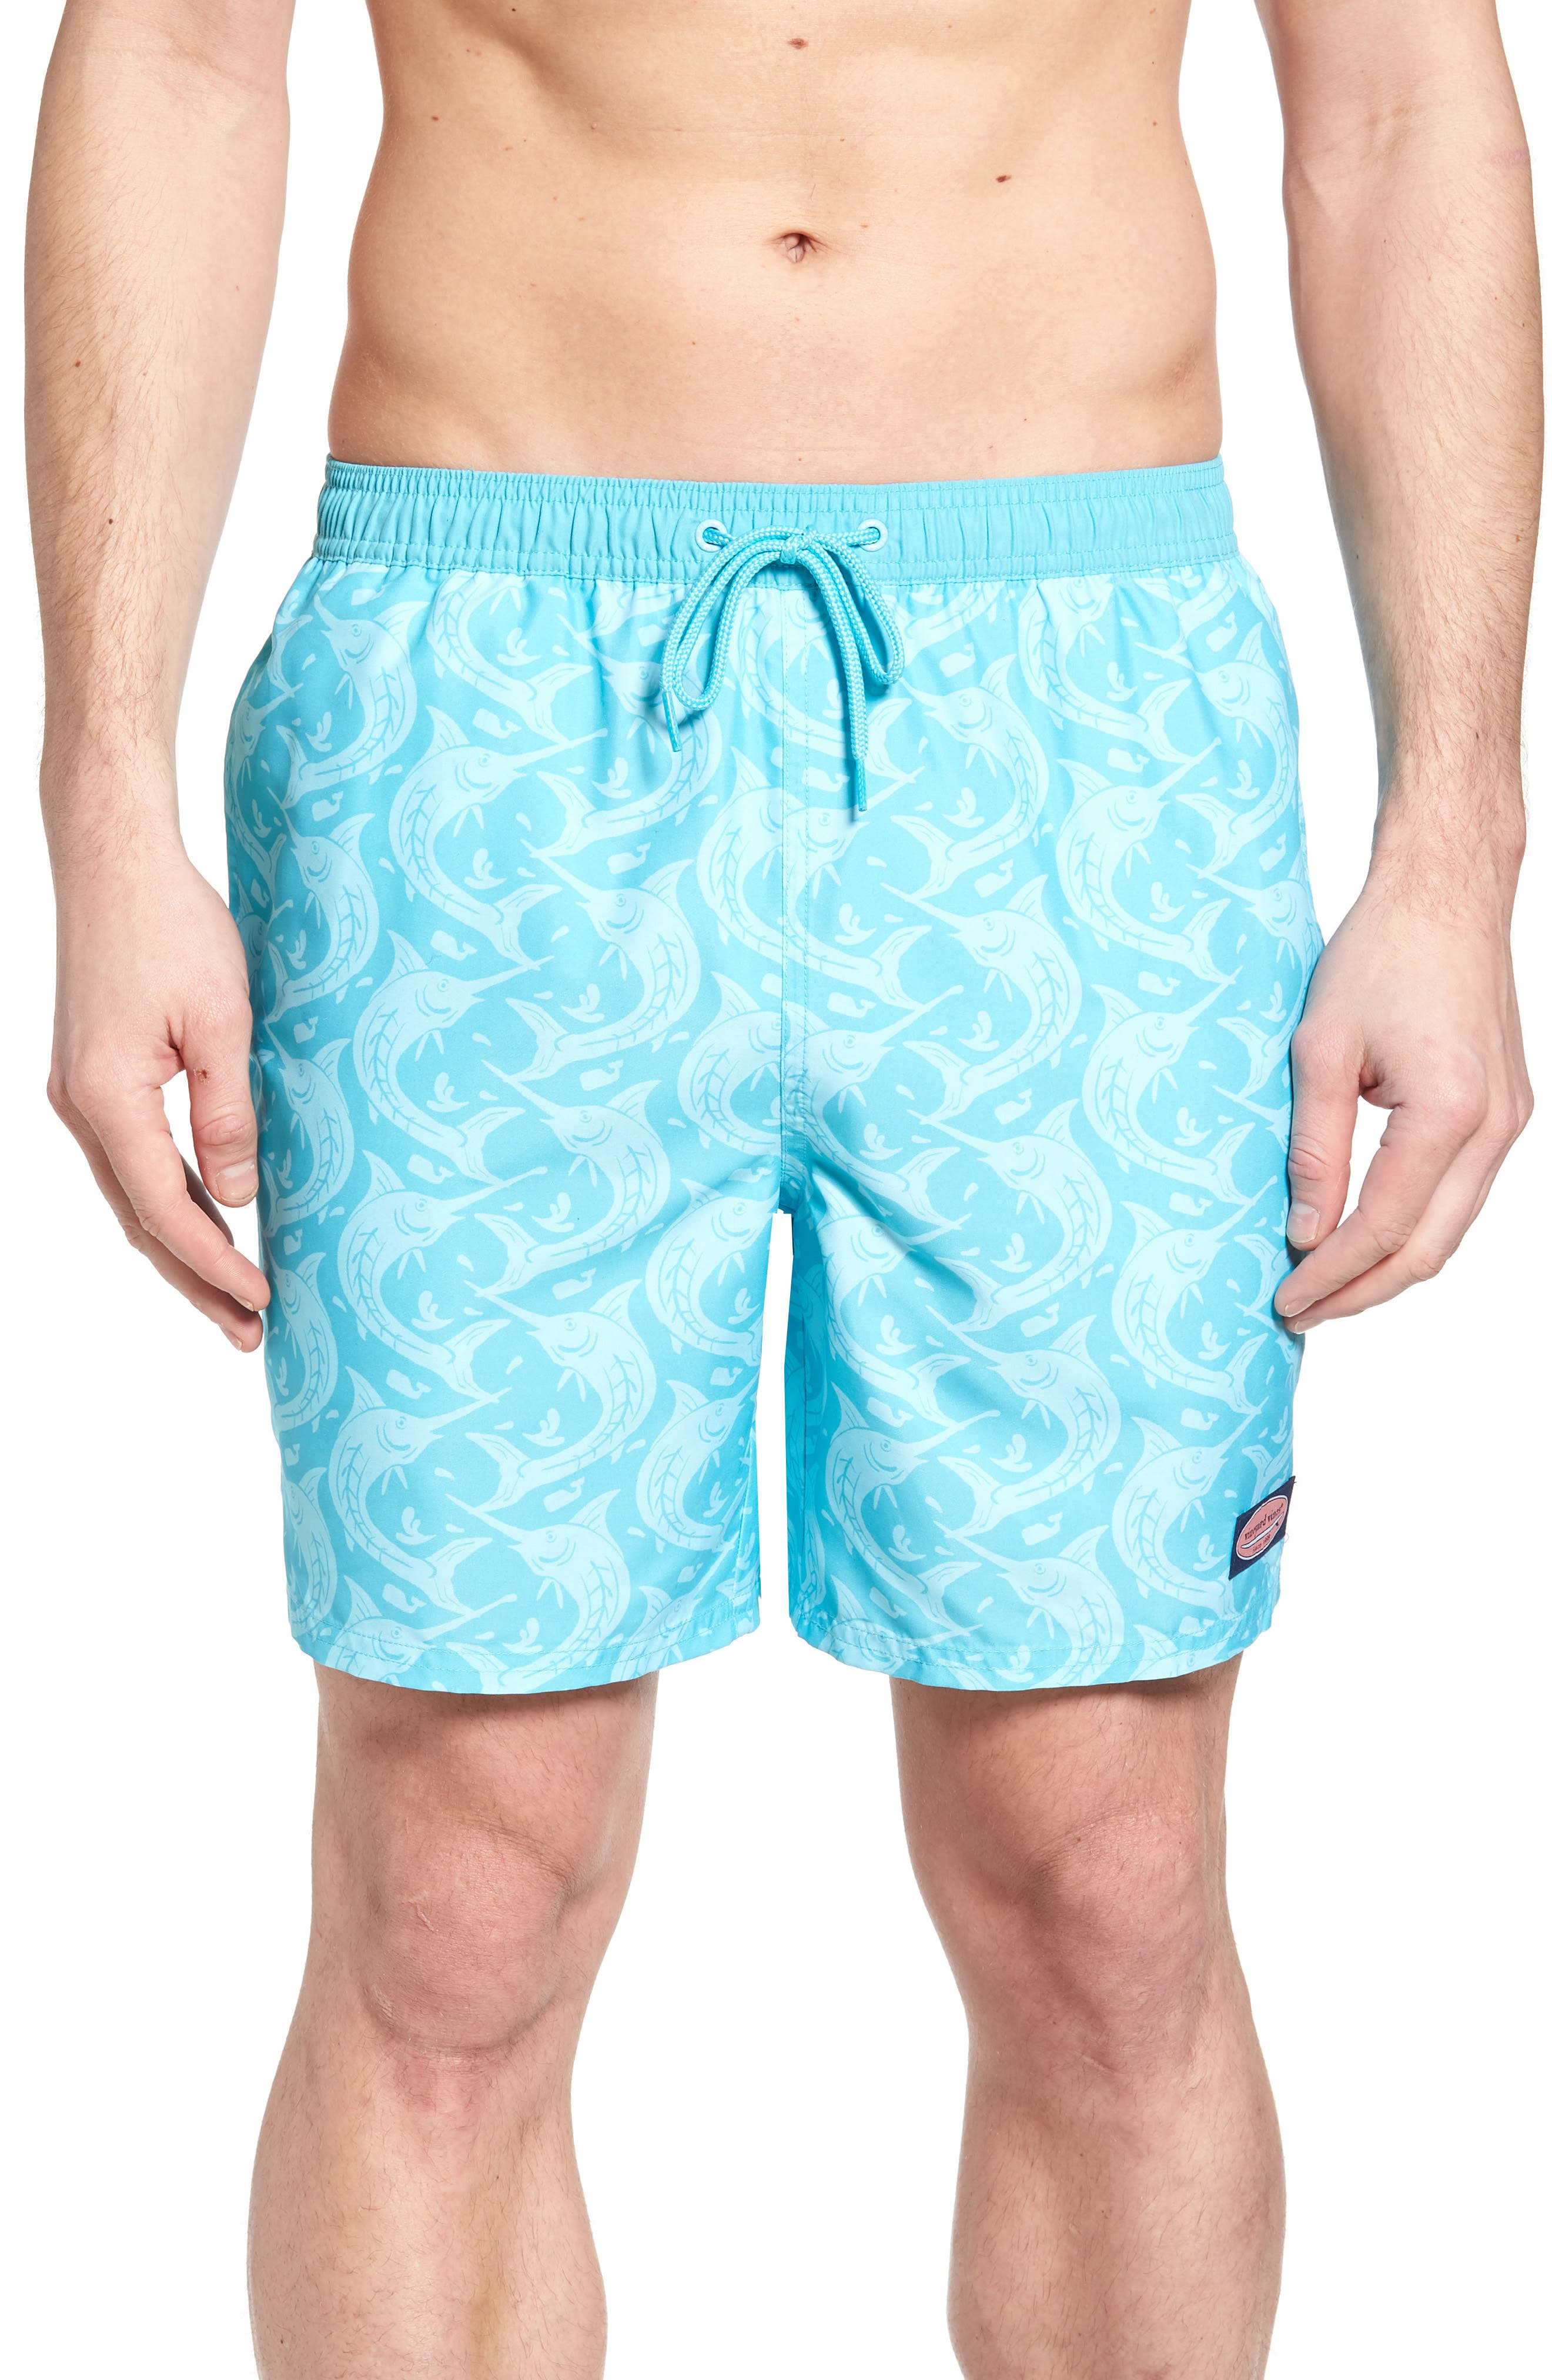 Marlin Out of Water Chappy Swim Trunks,                             Main thumbnail 1, color,                             459